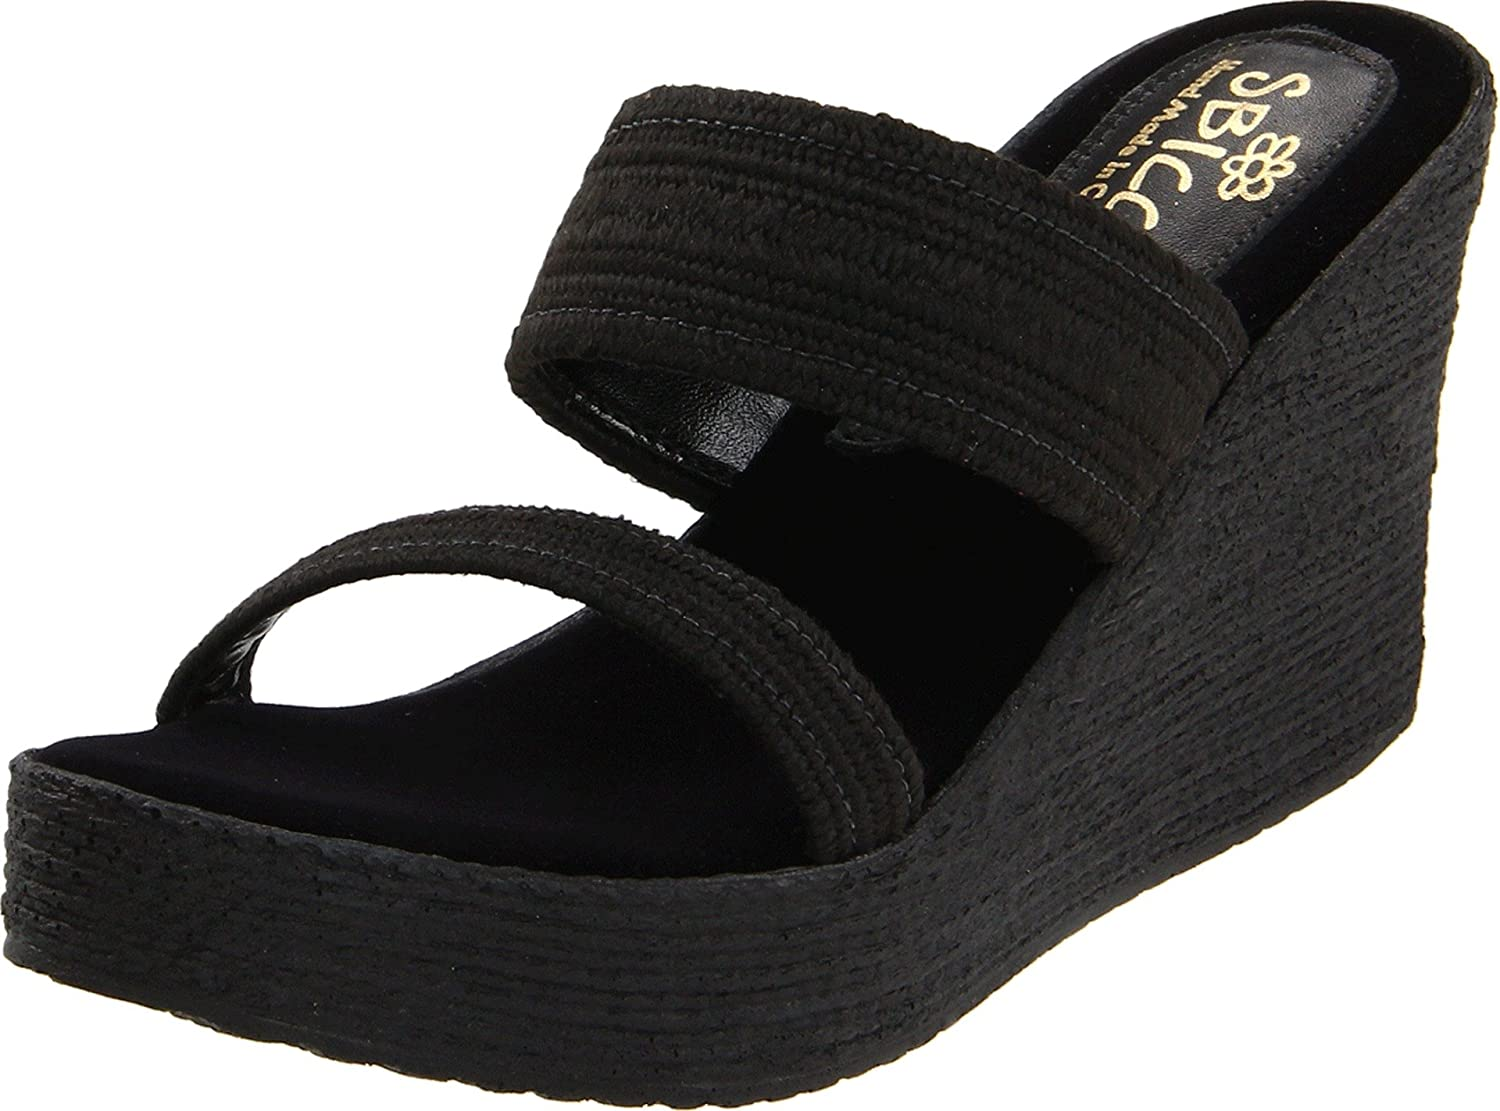 Sbicca Women's Vibe Wedge Sandal